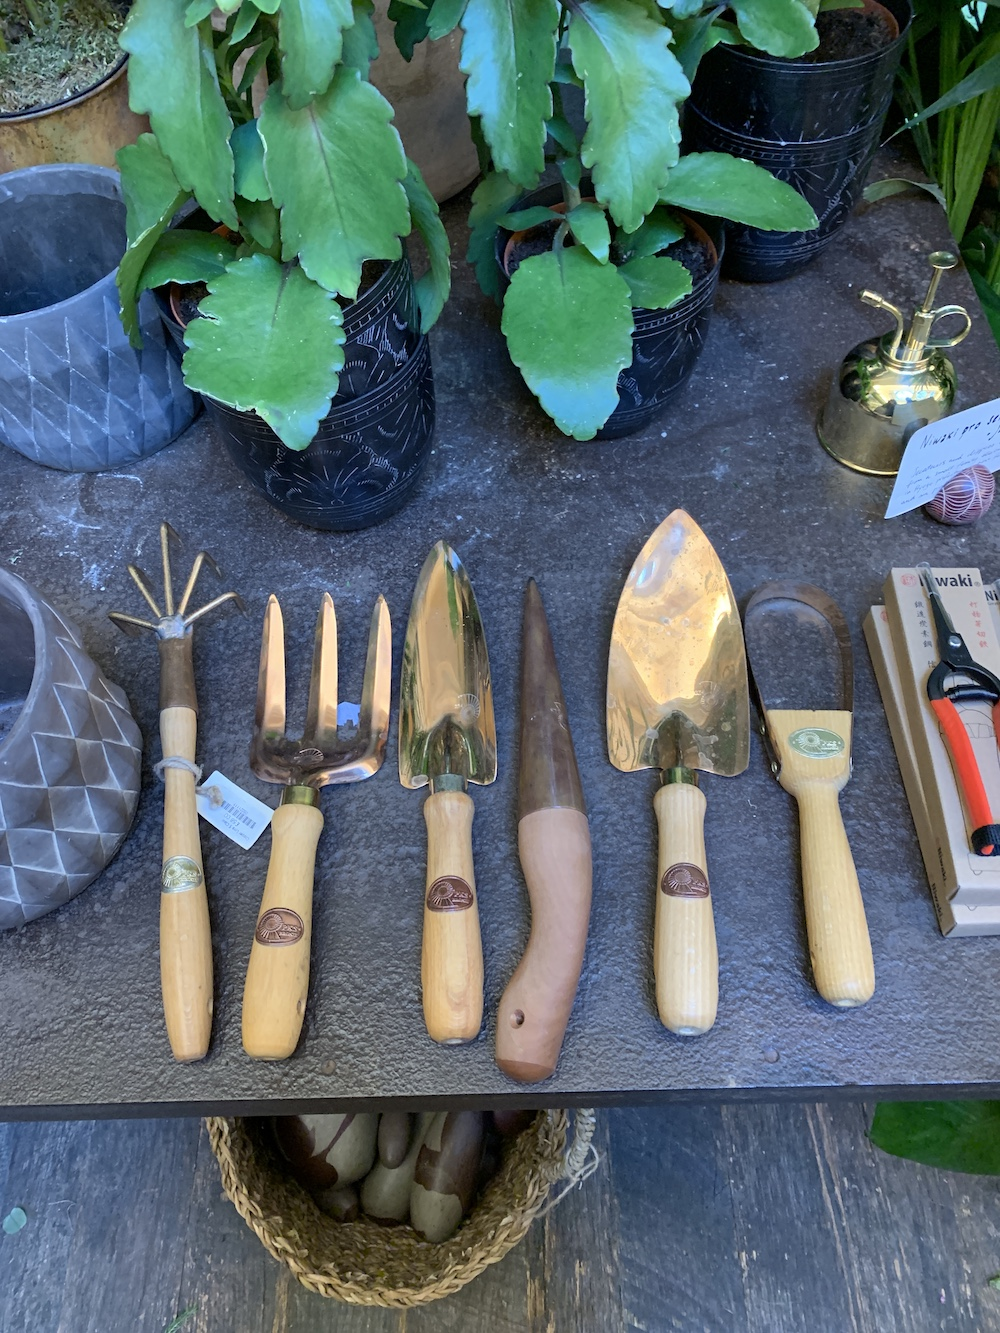 7 Things to do at Petersham Nurseries Petersham Garden Hand Tools and House Plants #PetershamNurseries #Garden #GardenTools #GardenSupplies #Gardening #HomeDecor #GardenDecor #London #CoventGarden